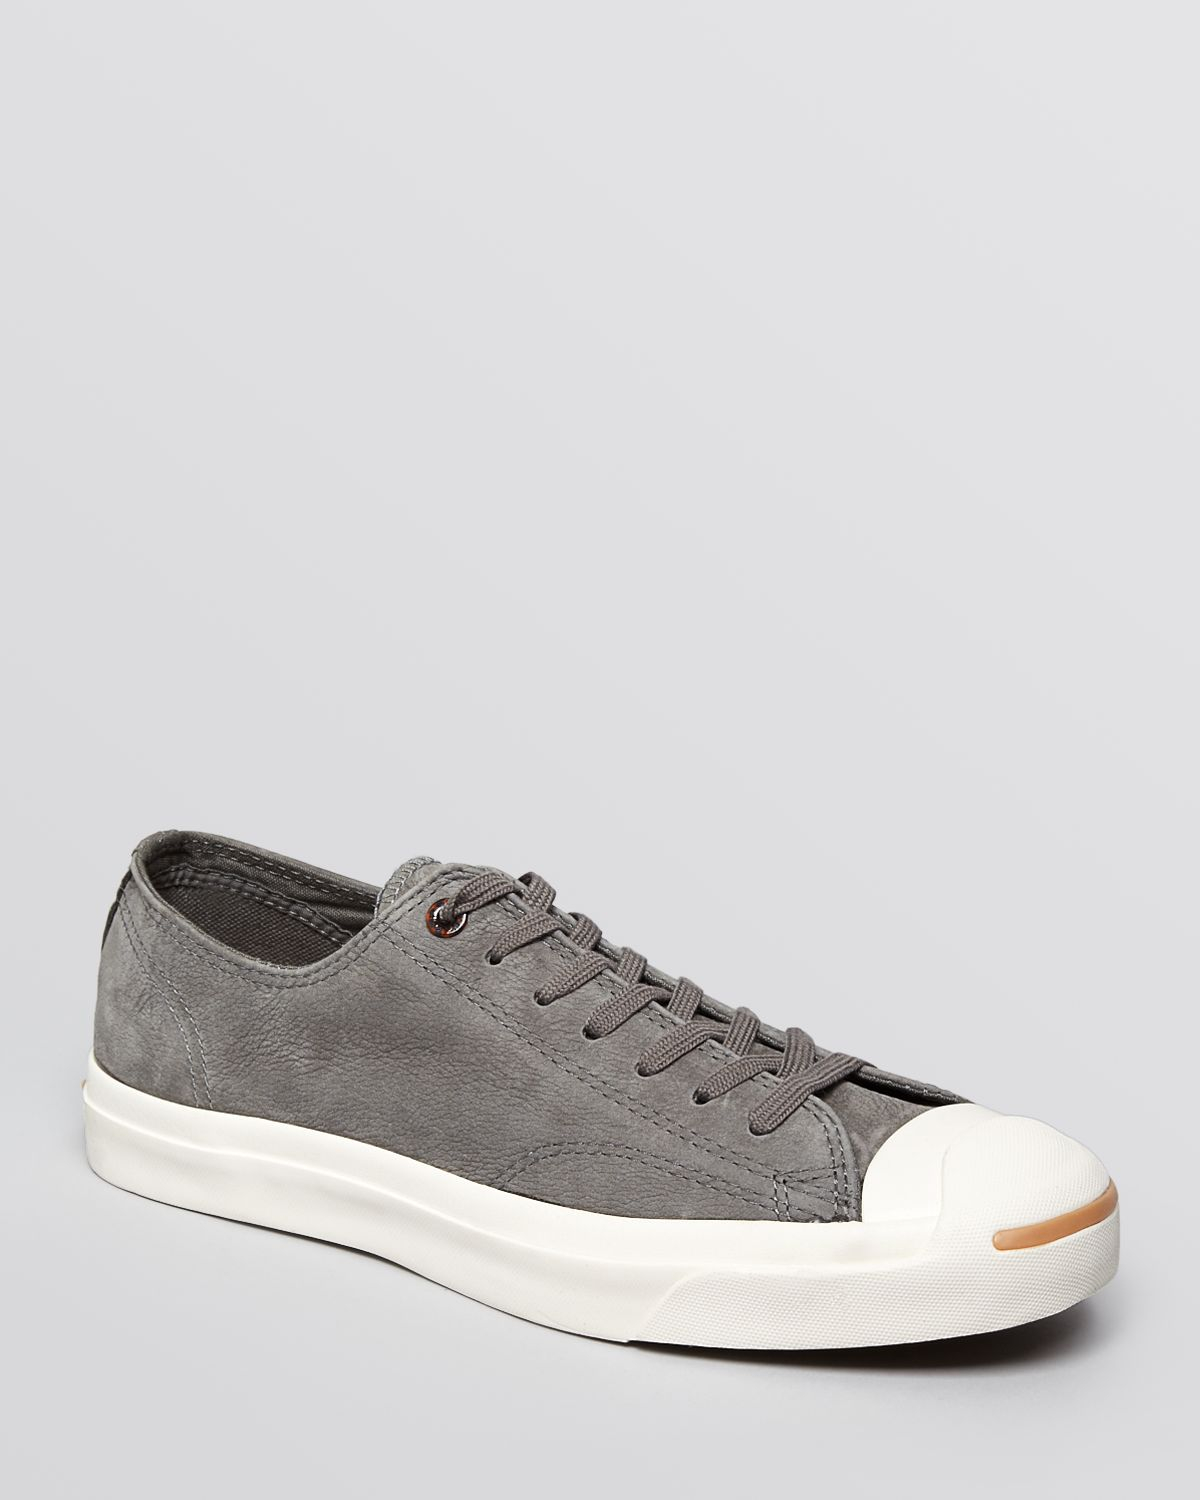 d58dd4d58db3 ... wholesale lyst converse jack purcell suede sneakers in gray for men  1f3c2 29f41